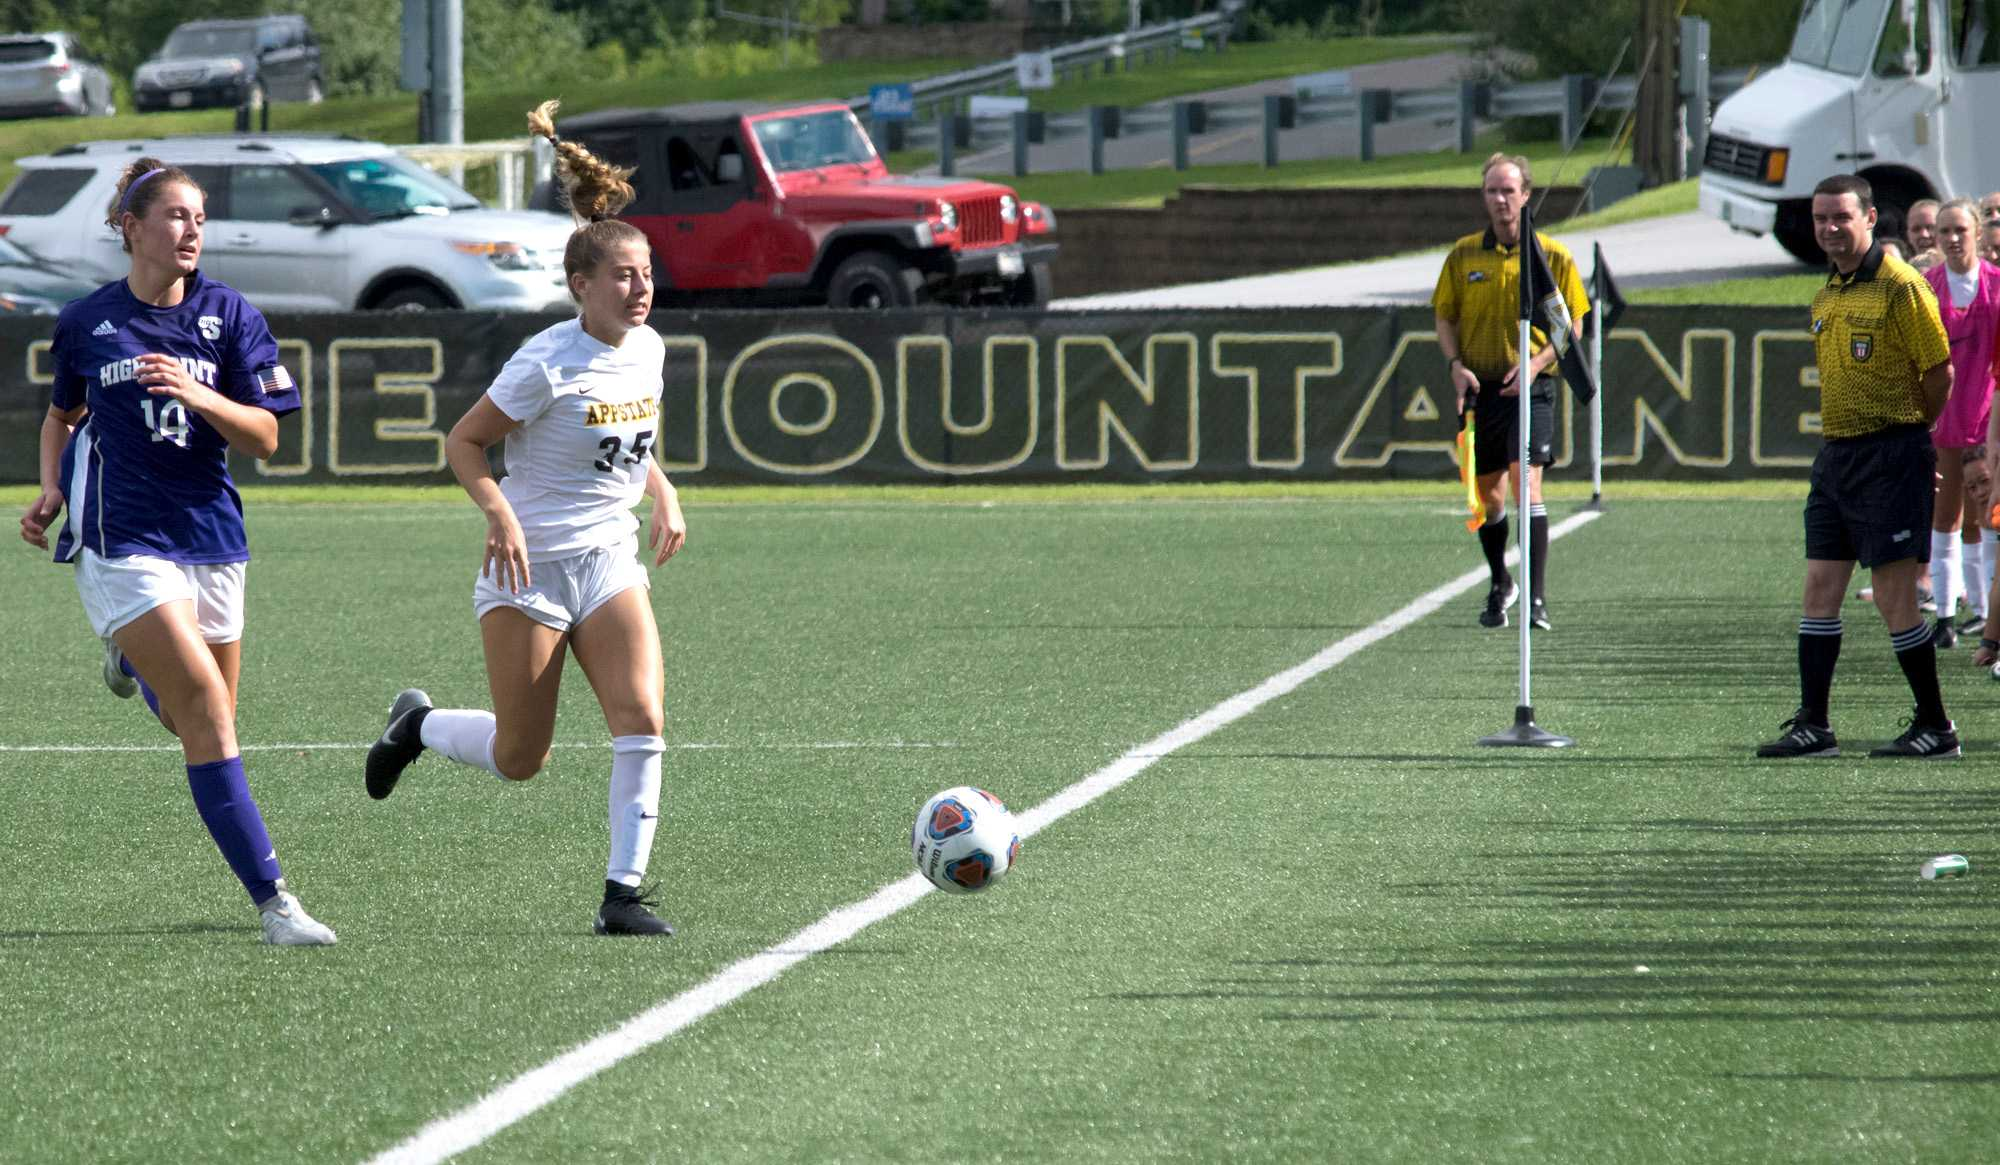 Freshman Abbey Rand follows the ball as it goes out of bounds during the game against High Point.